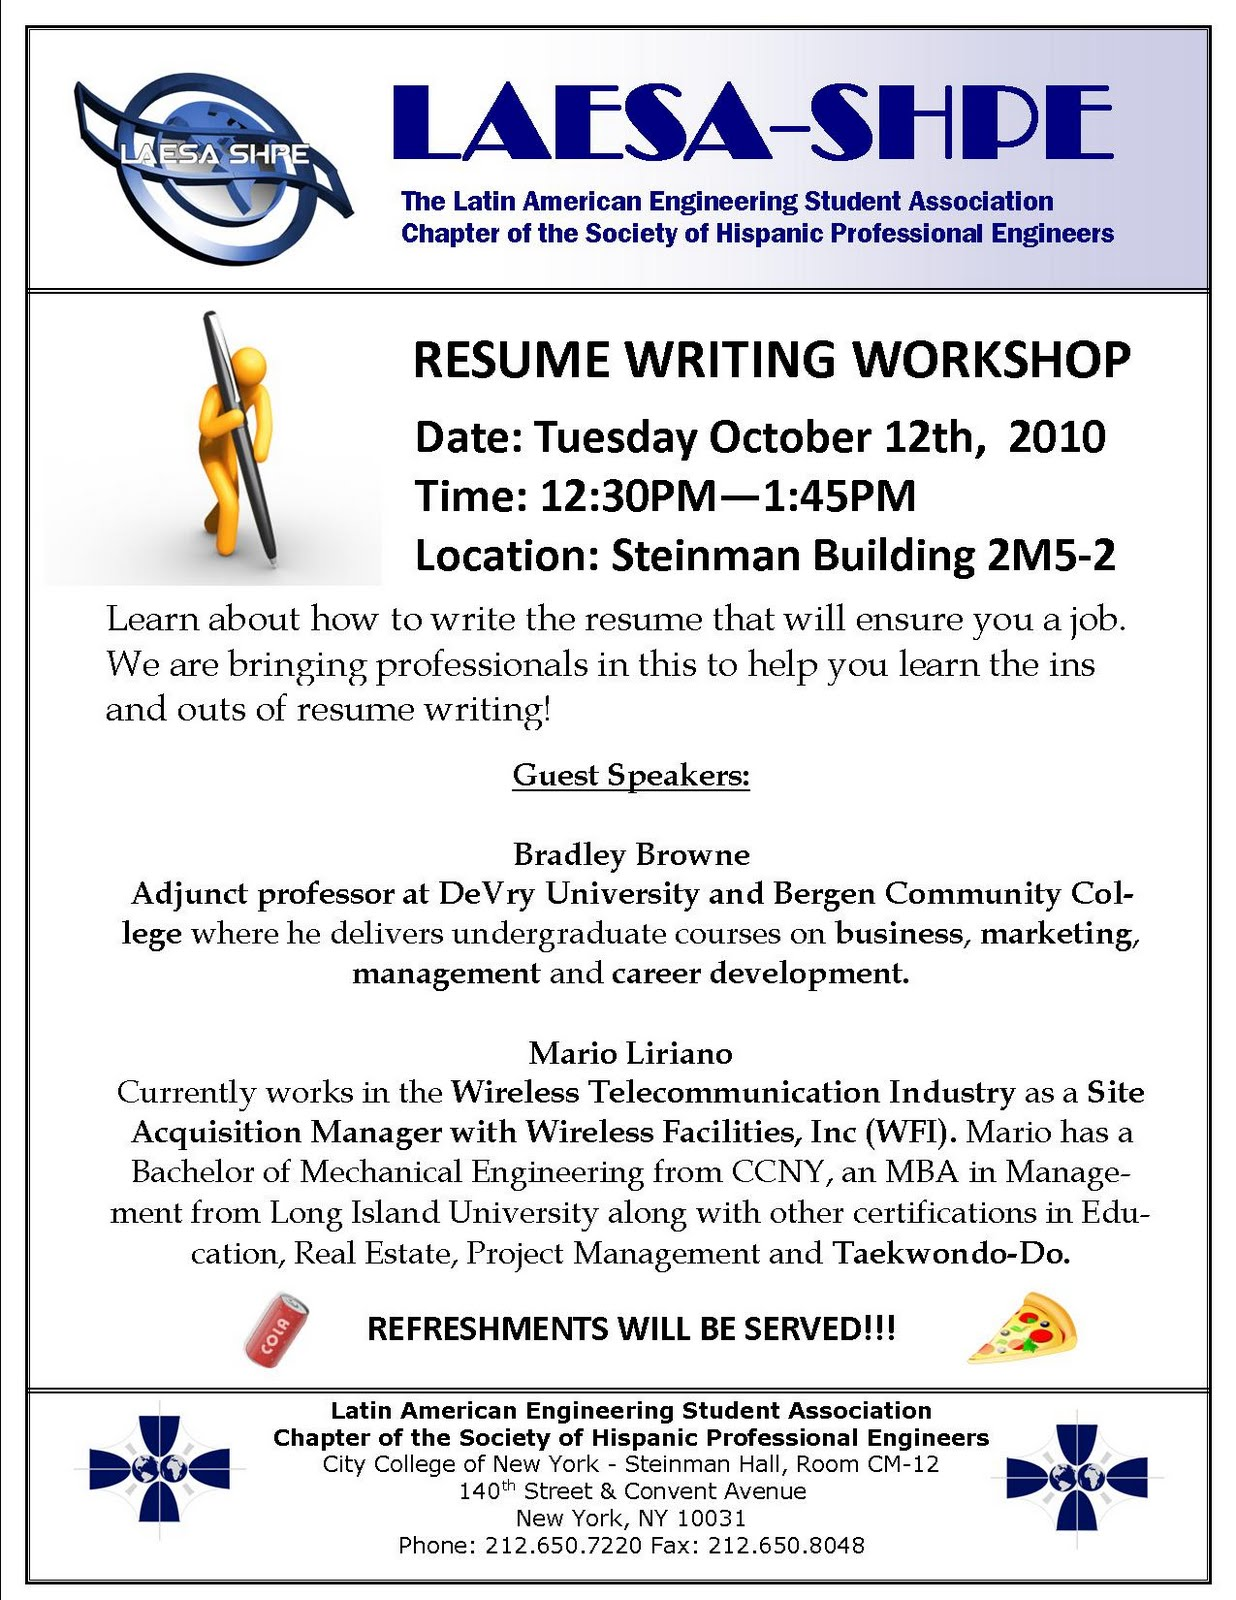 LAESA SHPE Resume Writing Workshop  Resume Writing Workshop